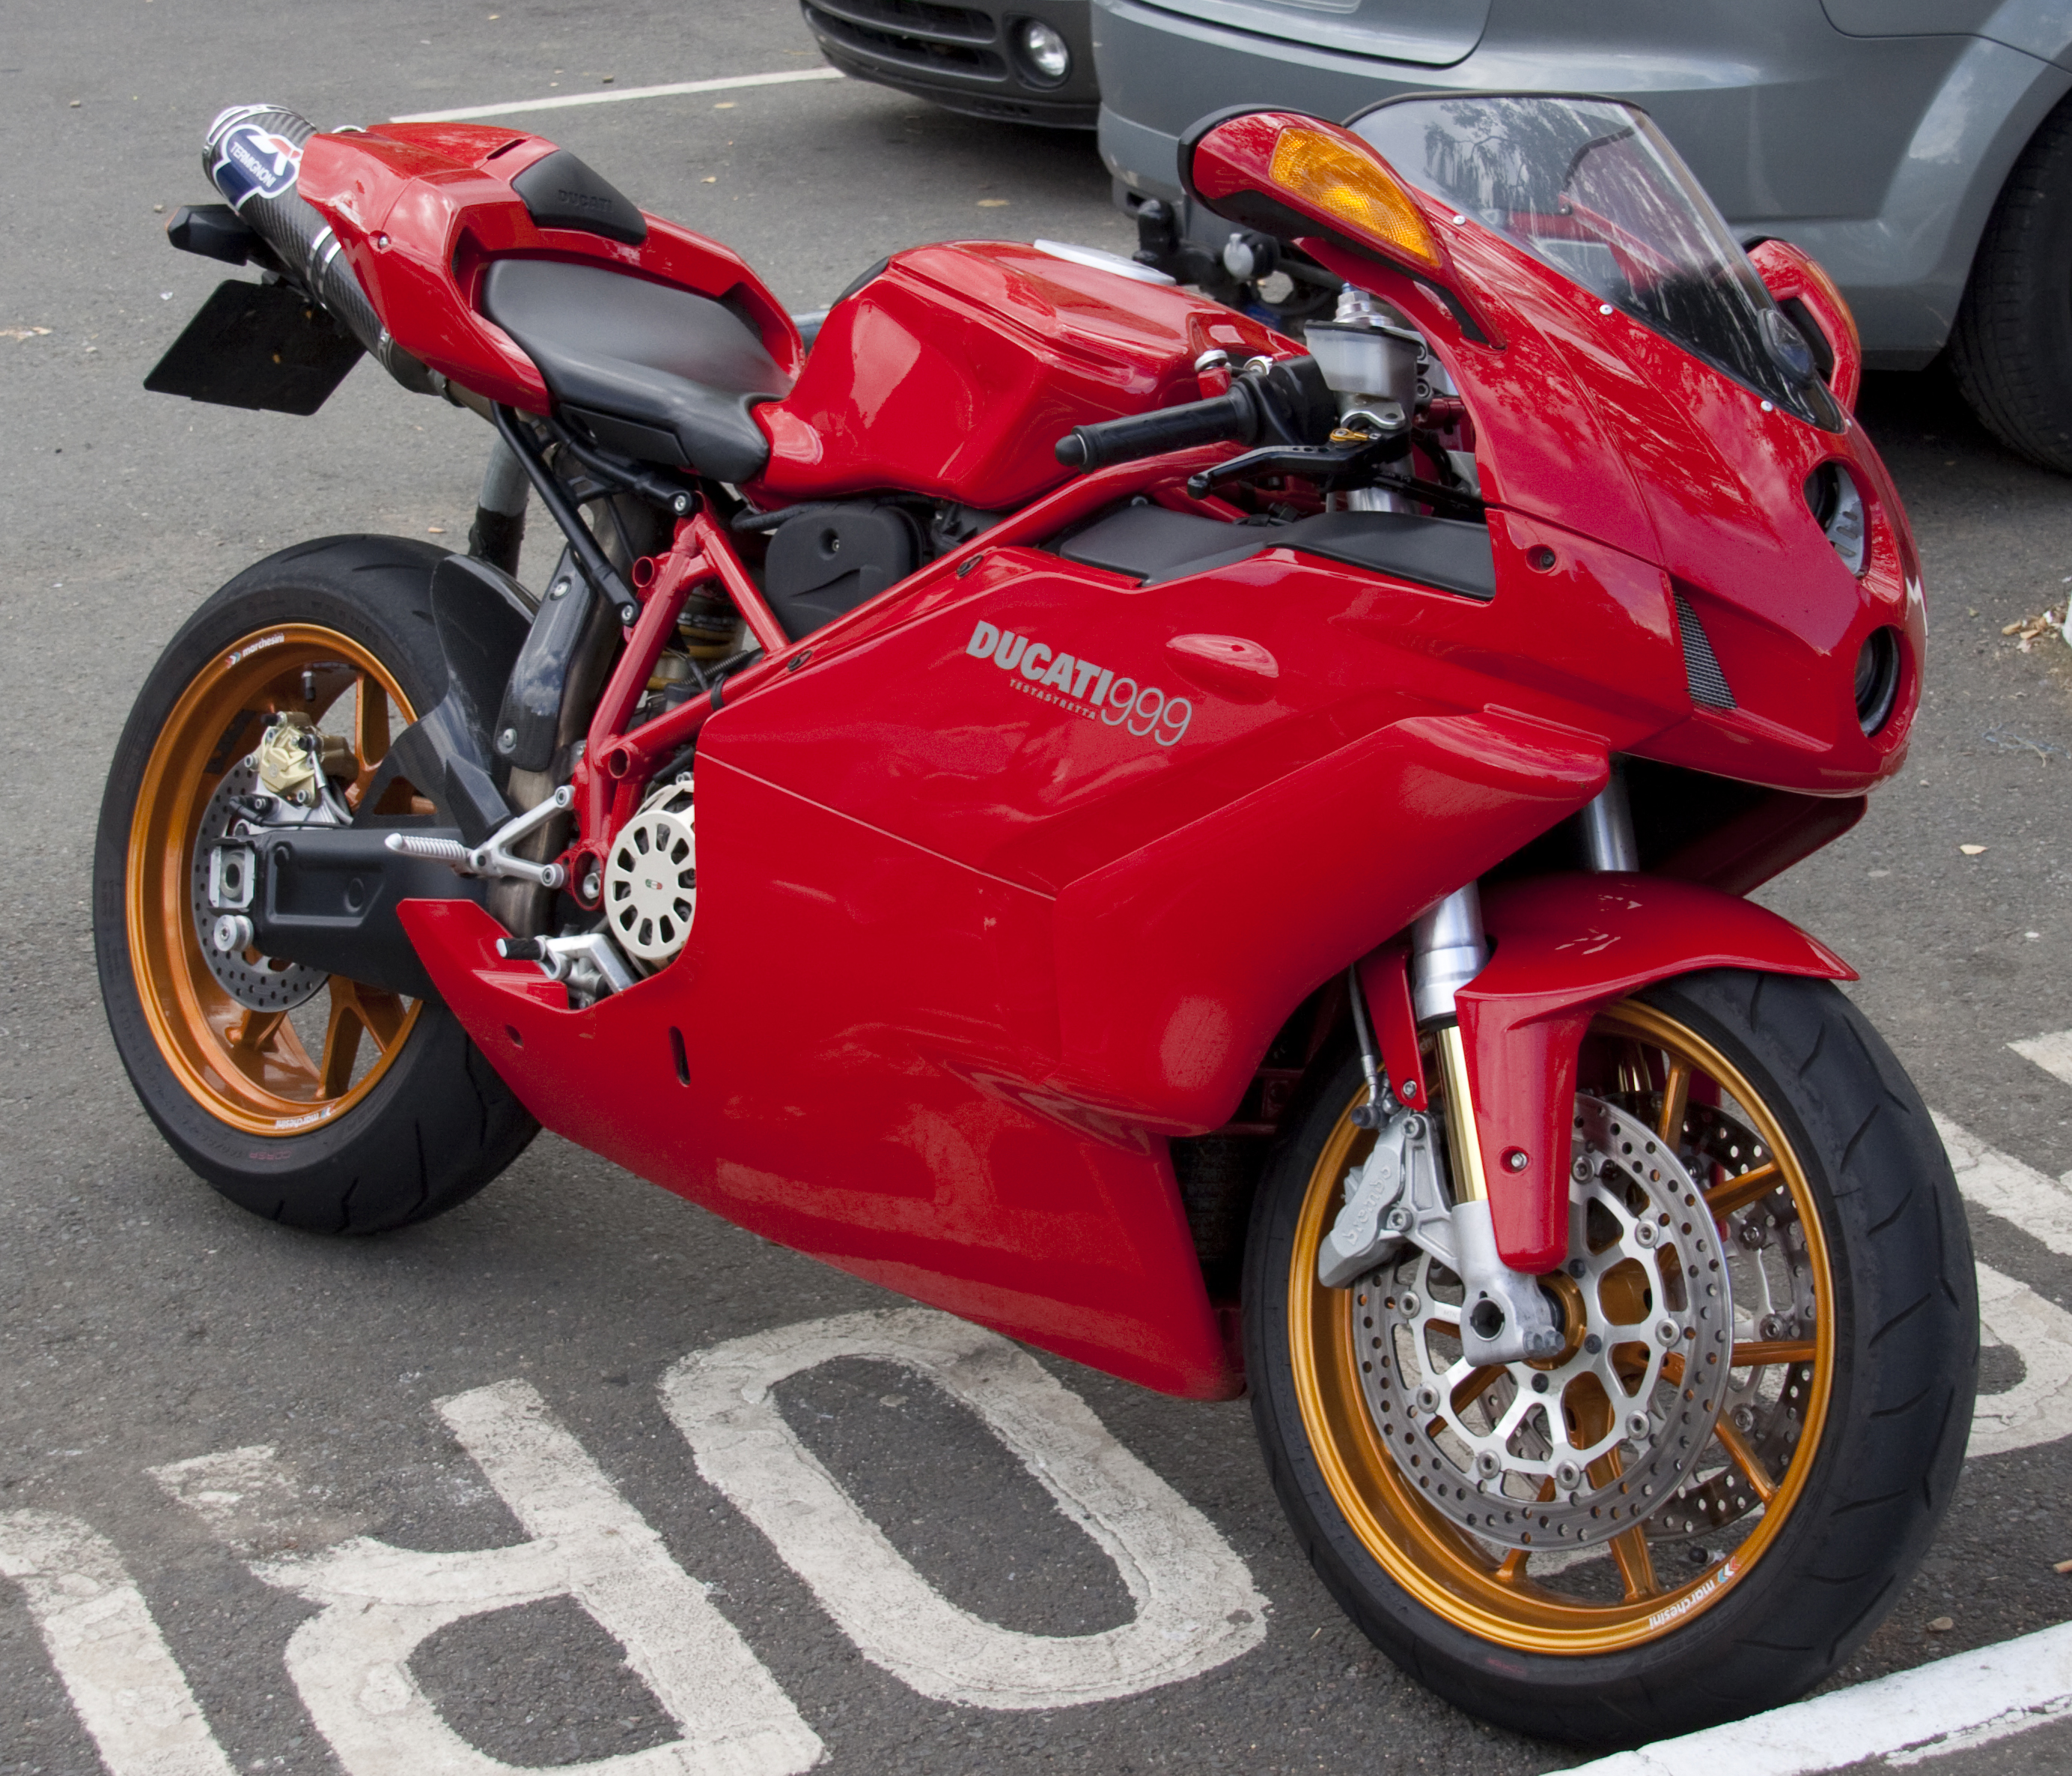 Ducati 999 wallpapers #11721